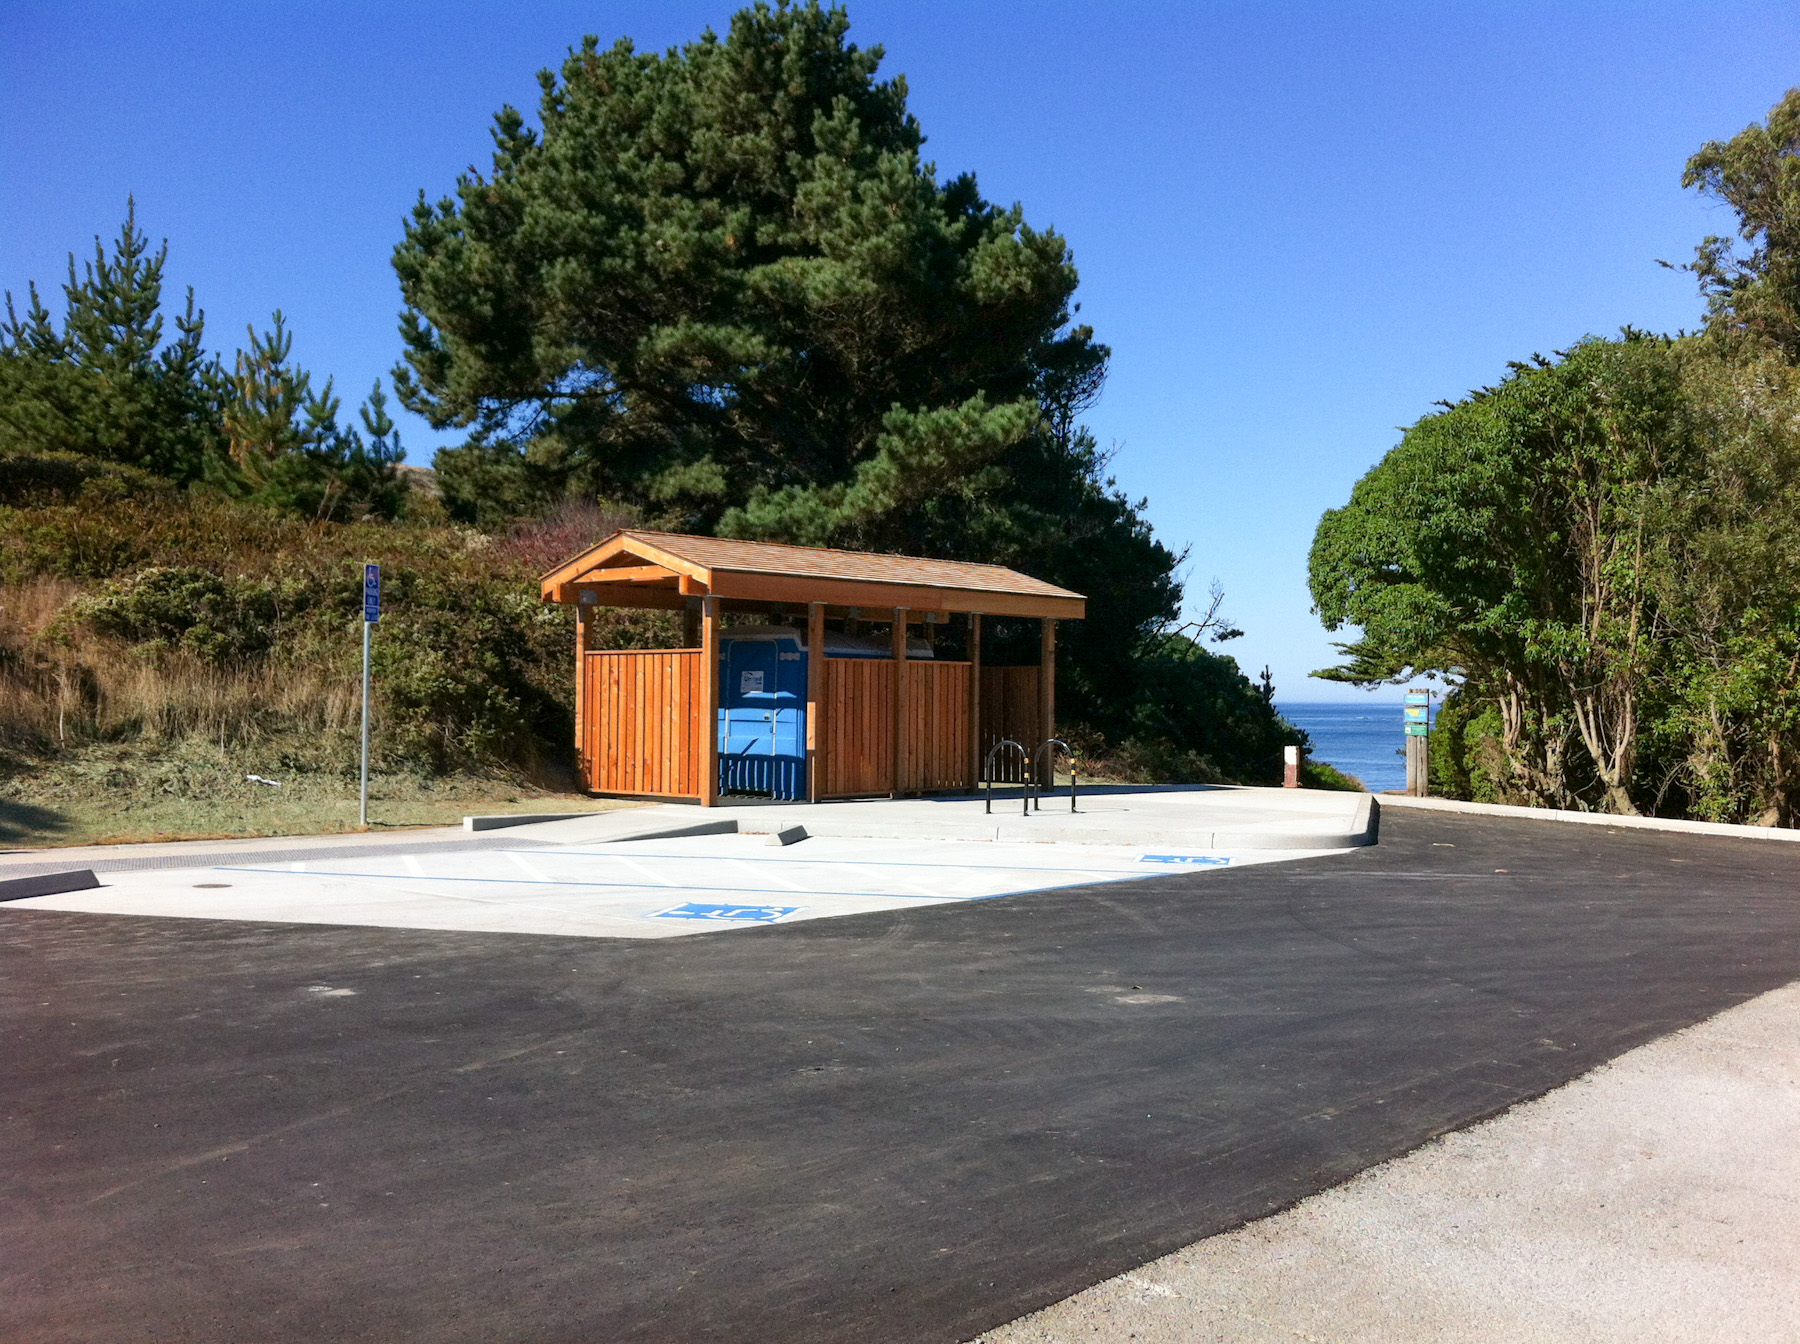 Agate Beach parking lot new restrooms